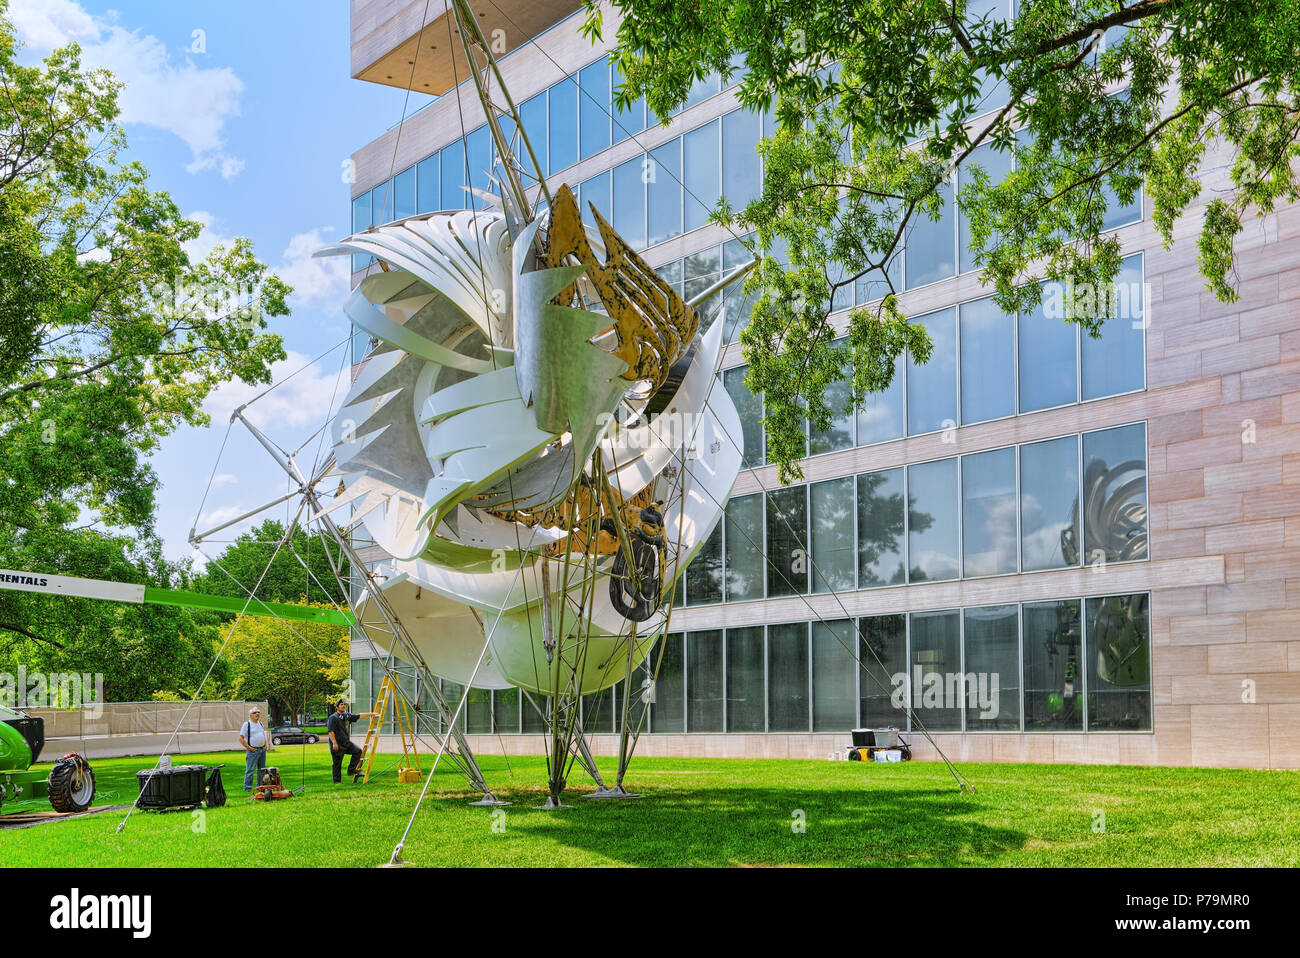 Washington, DC, USA - September 10,2017 : Artistic installation in front of Art Research Library - National Gallery of Art, 4th St NW. - Stock Image